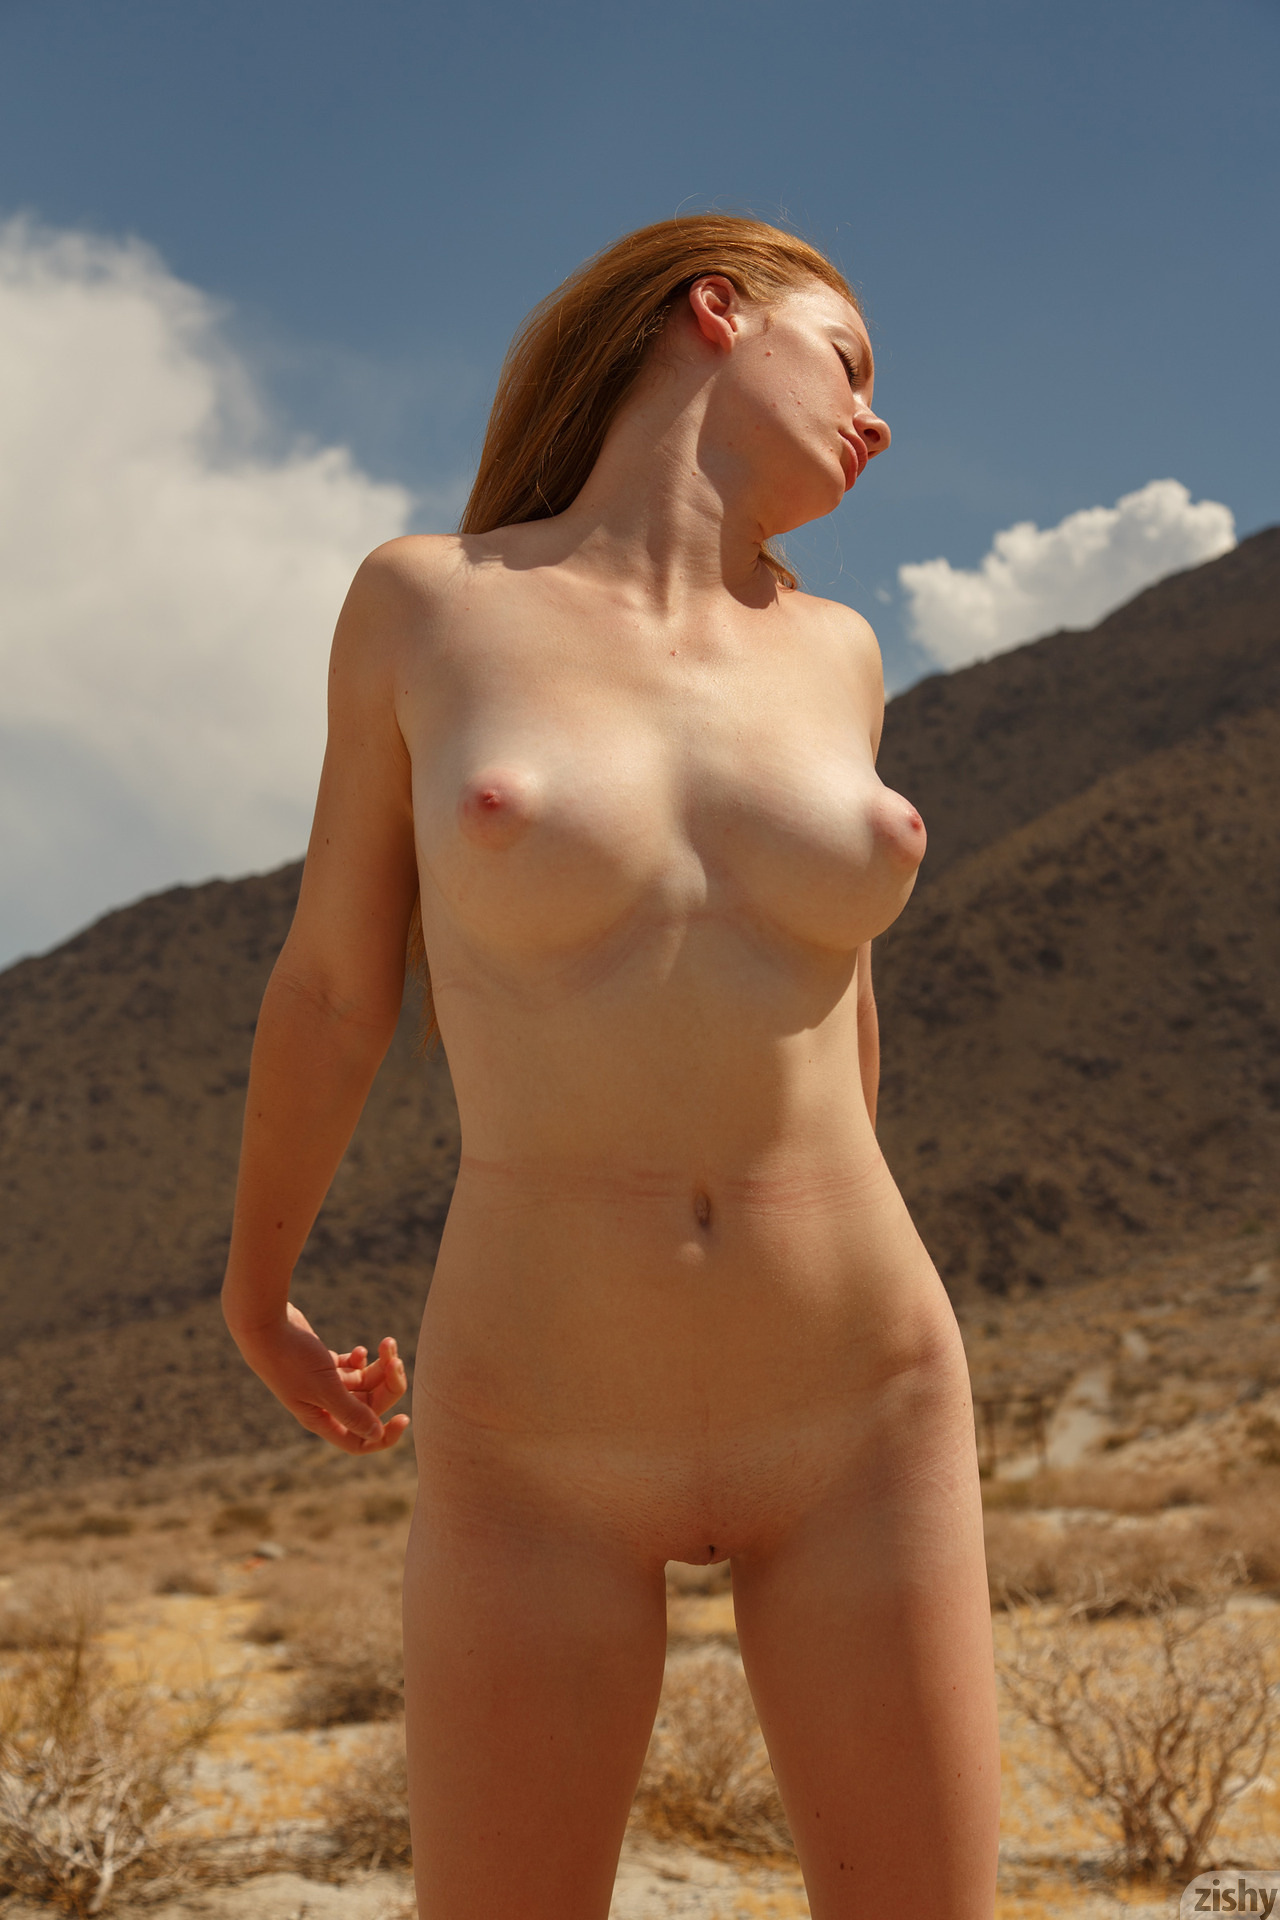 Naked picture naked picture-6378